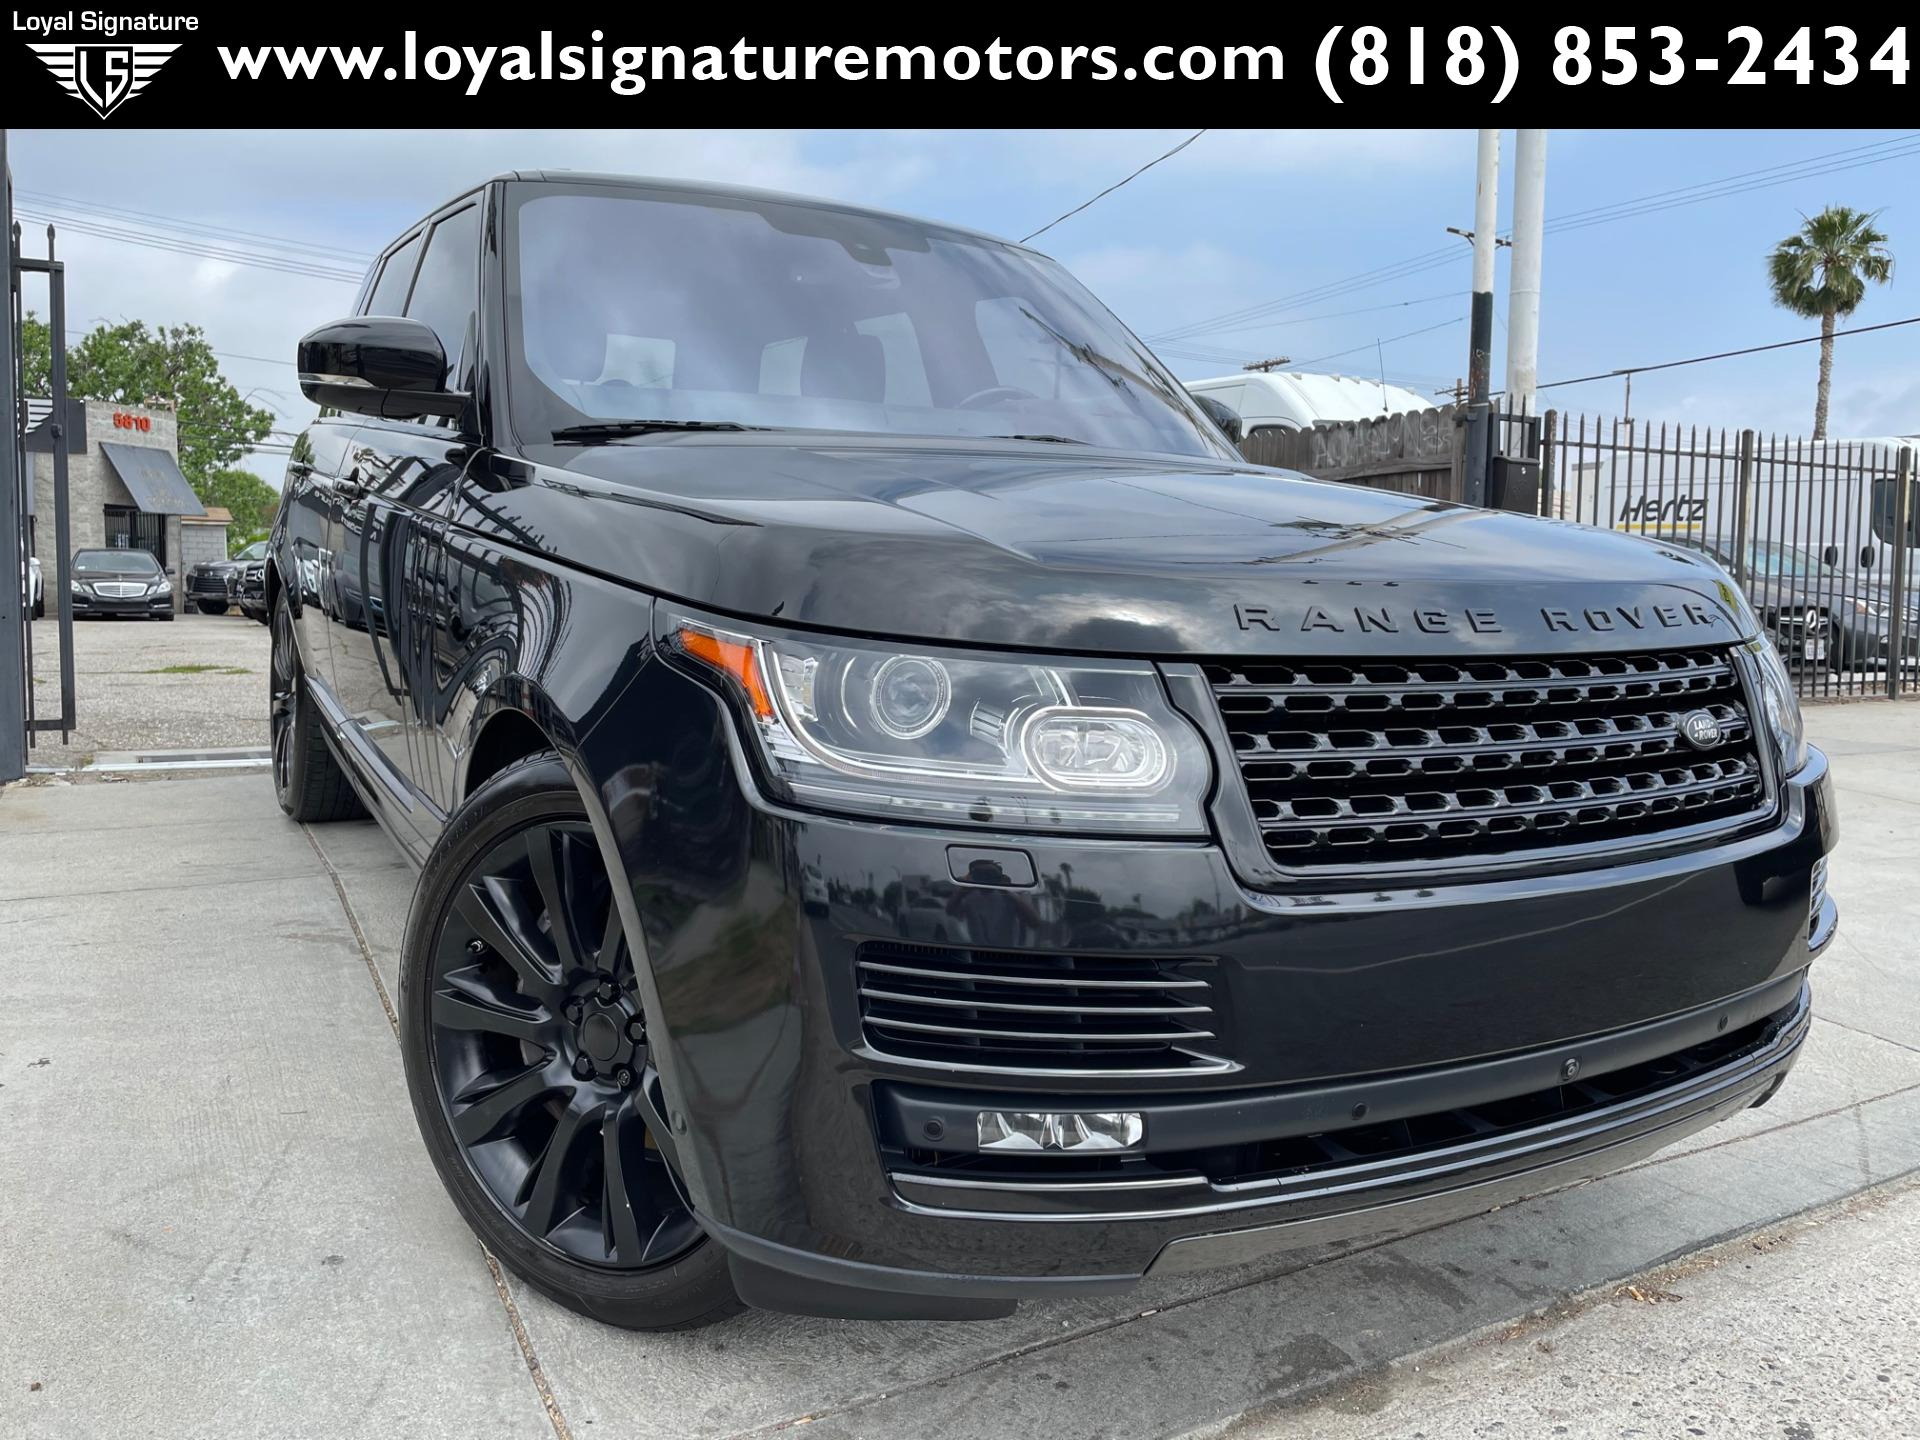 Used 2016 Land Rover Range Rover Supercharged   Van Nuys, CA